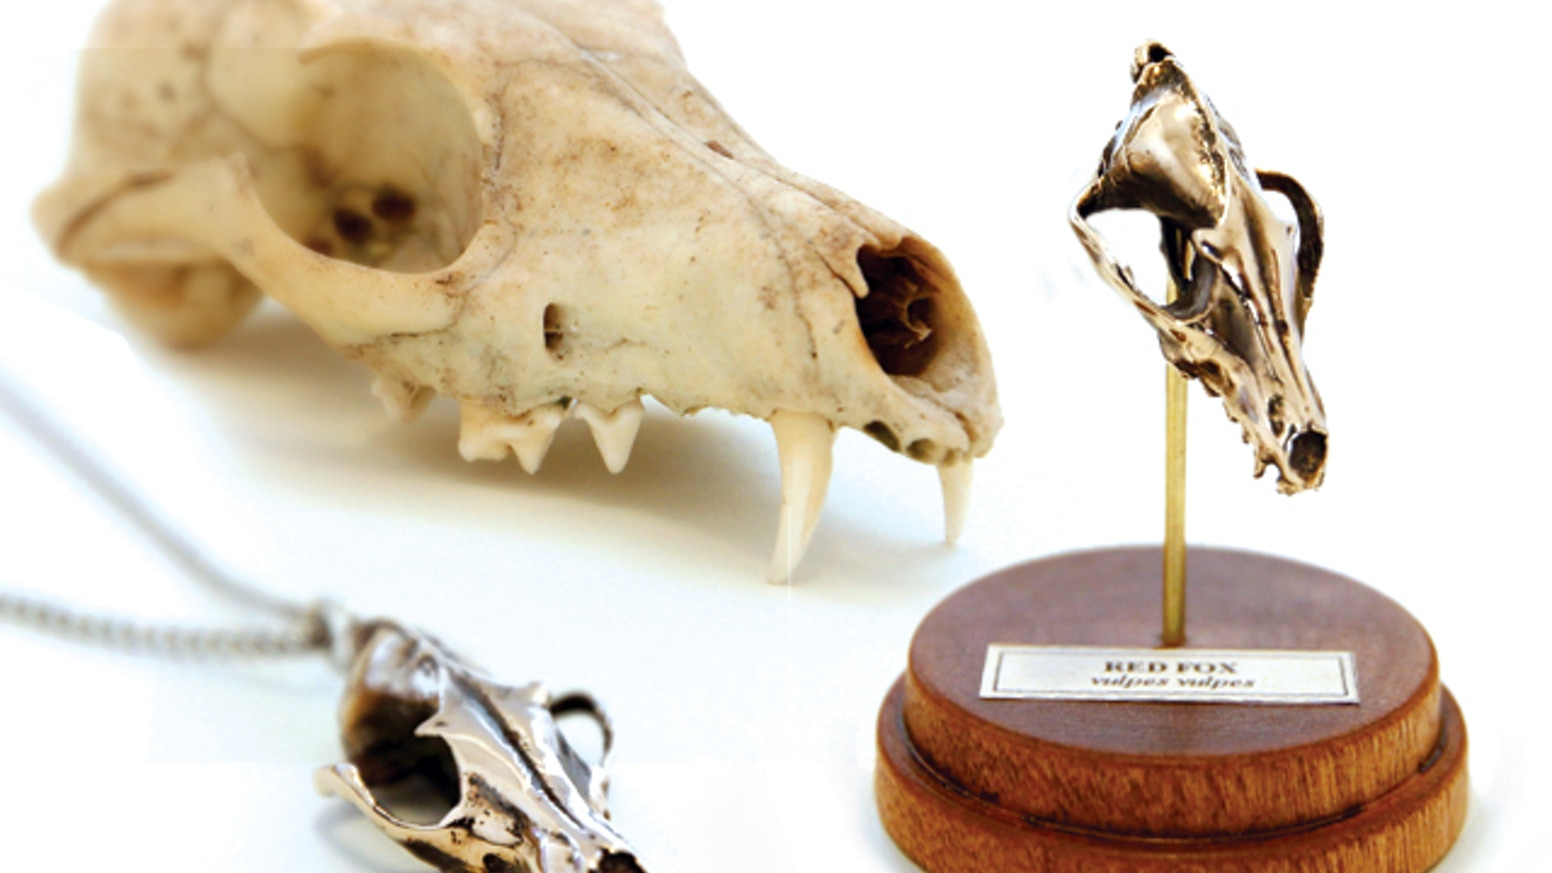 Miniature animal skull replicas, reproduced in high detail using 3D scanning, 3D printing, and traditional lost wax casting.